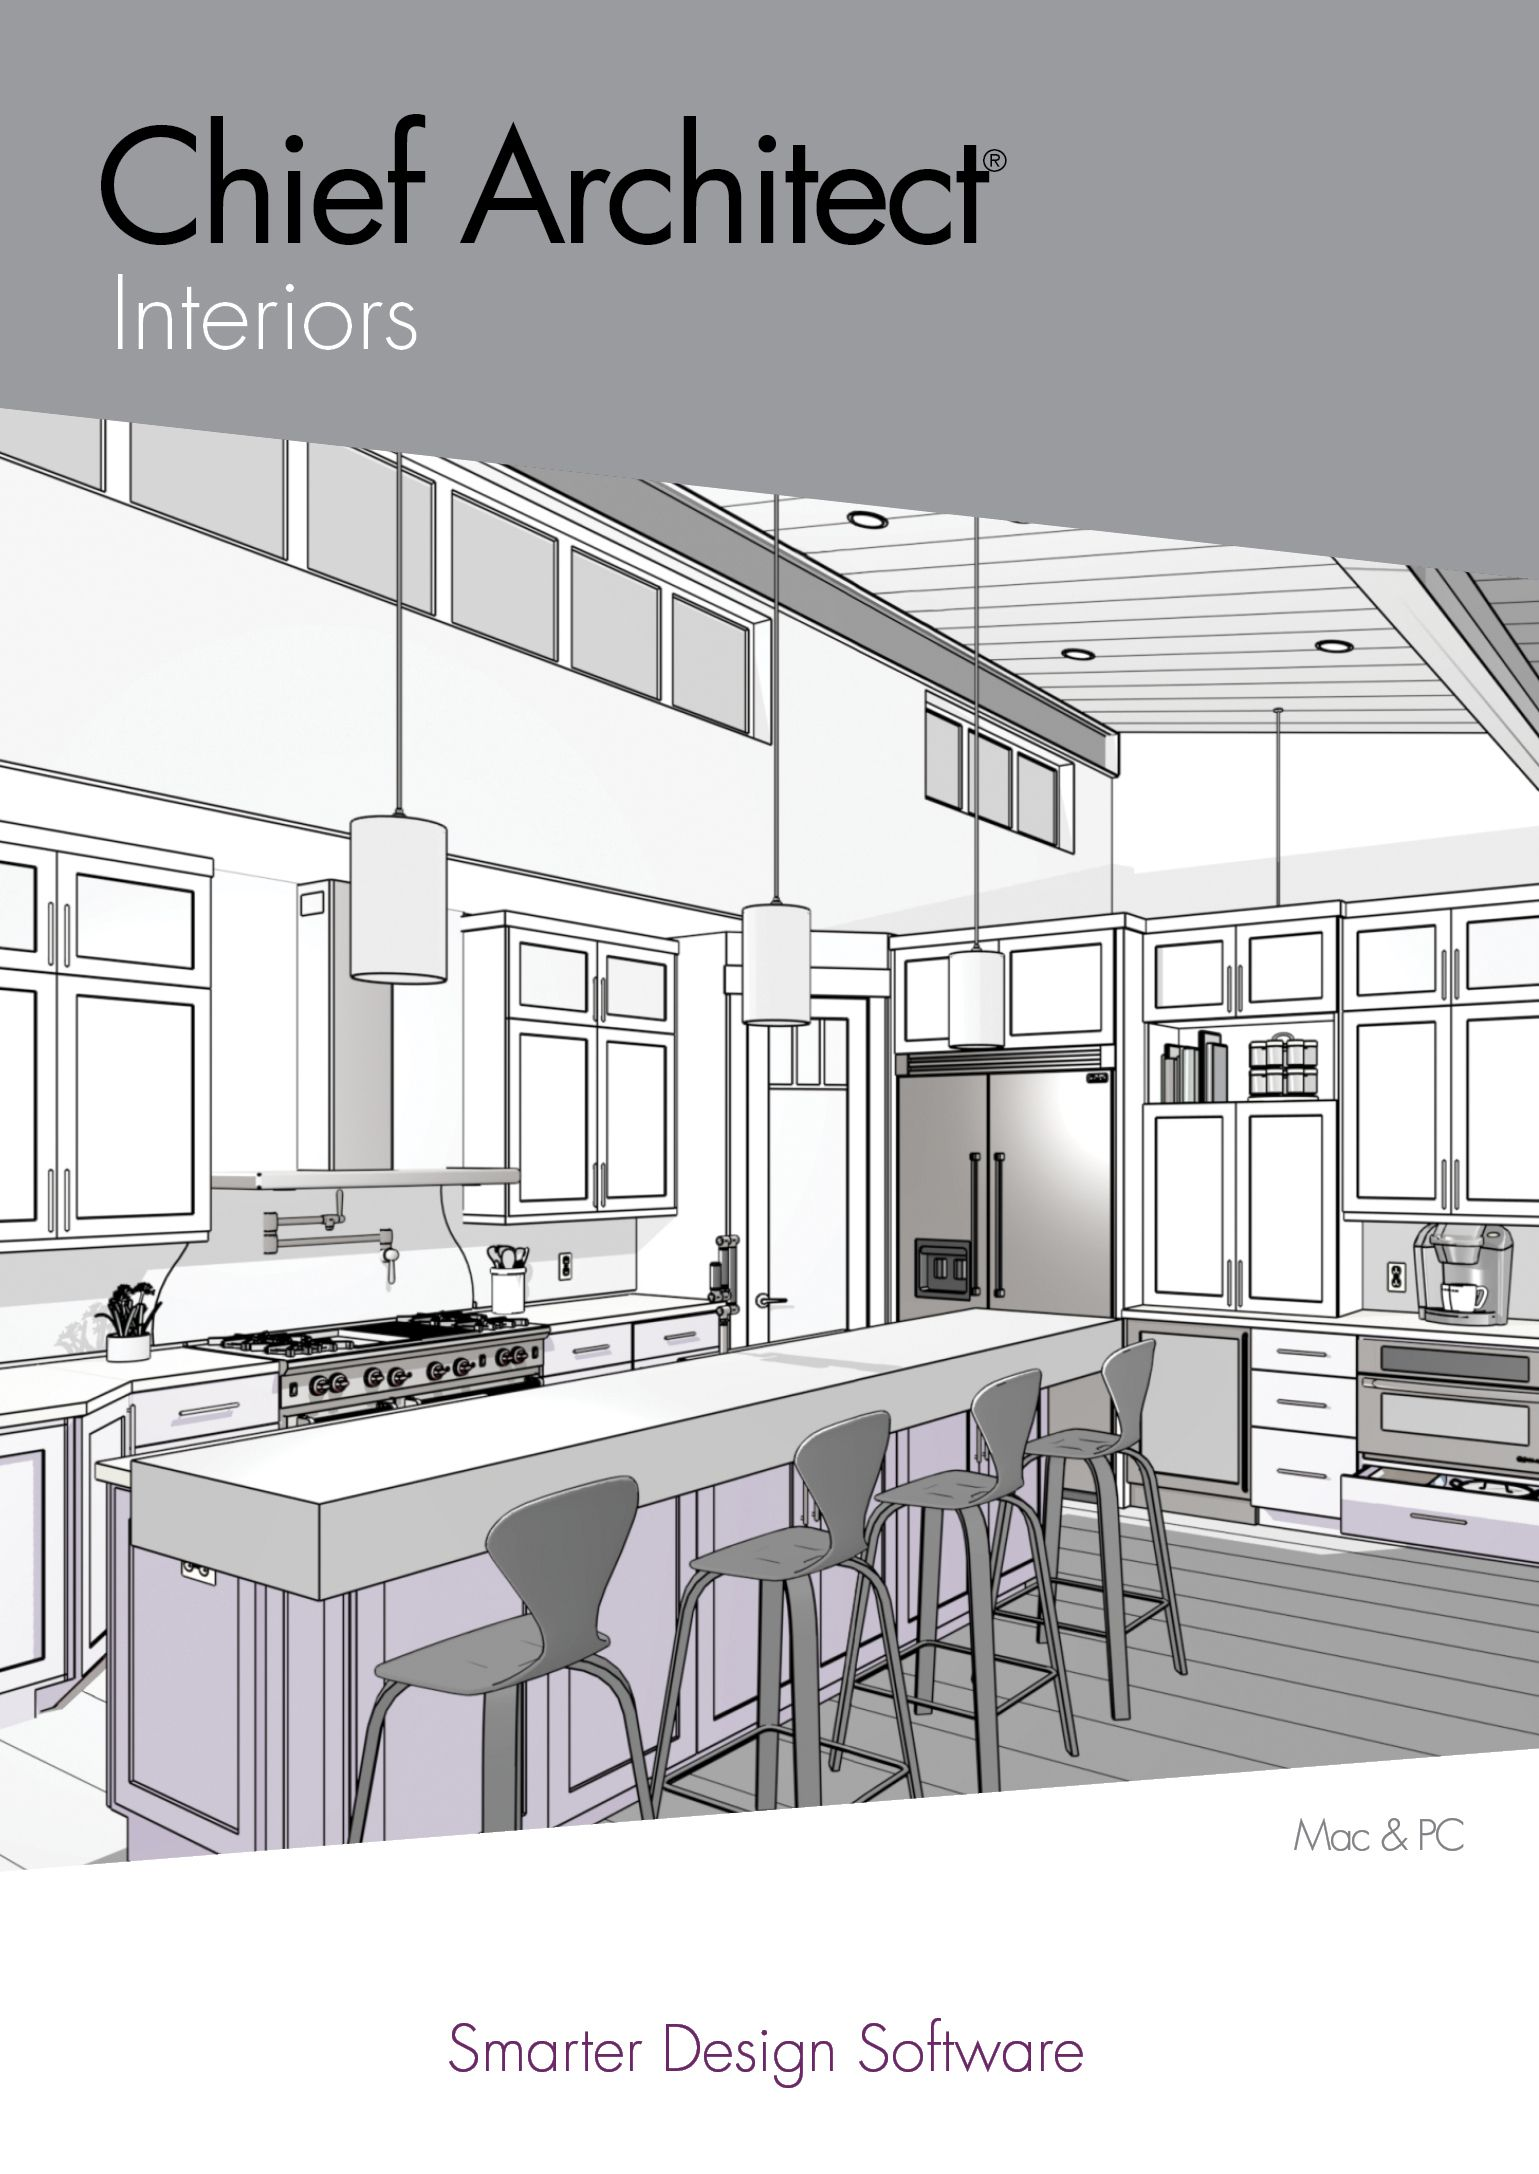 Interior Home Design Software Specifically For Kitchen Bath And